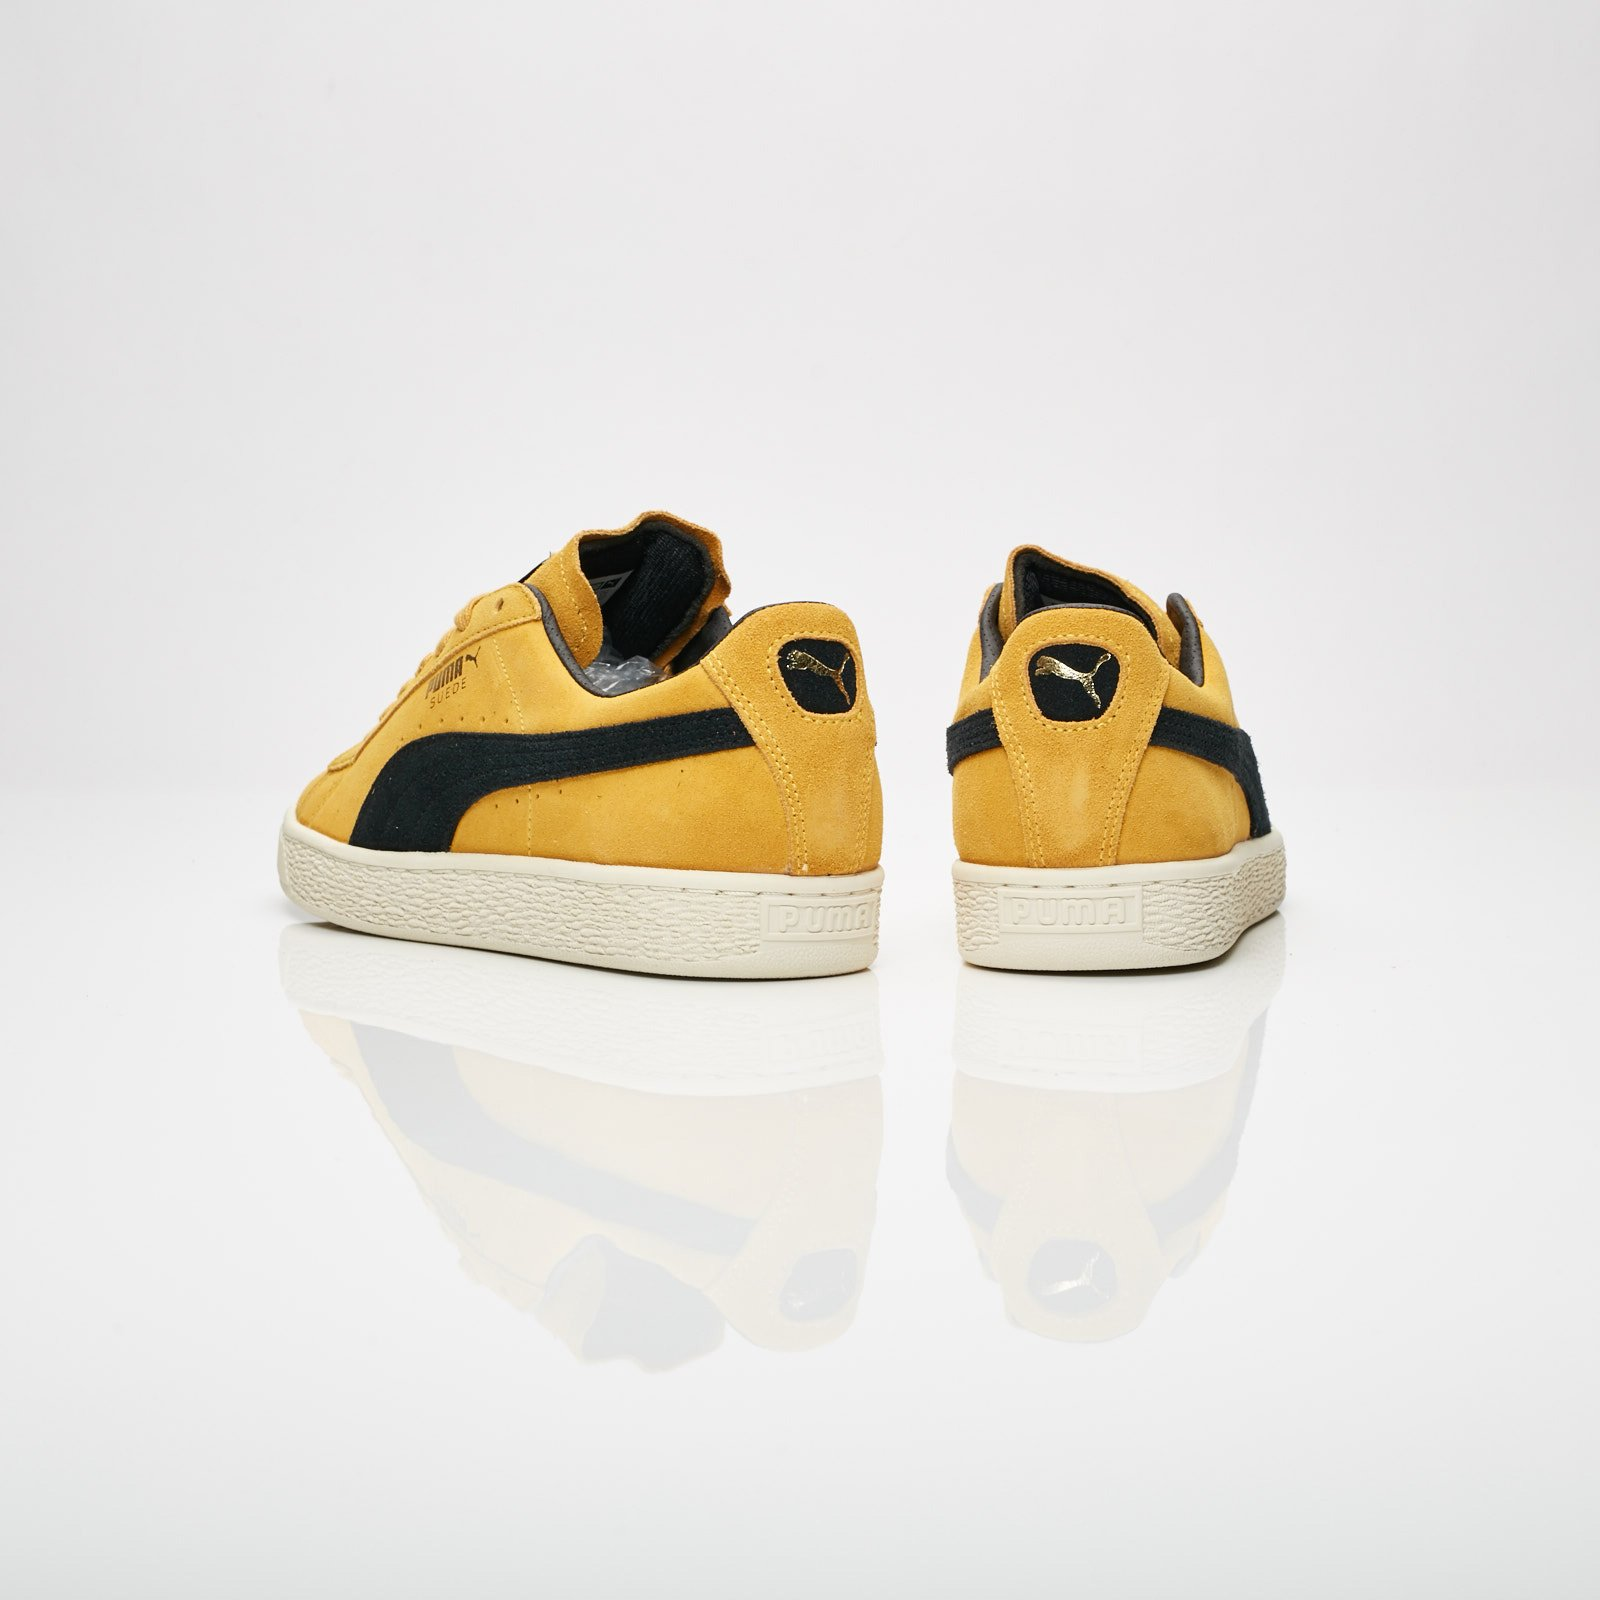 on sale 74cb0 2fd2e Puma Suede Classic Archive - 365587-03 - Sneakersnstuff ...